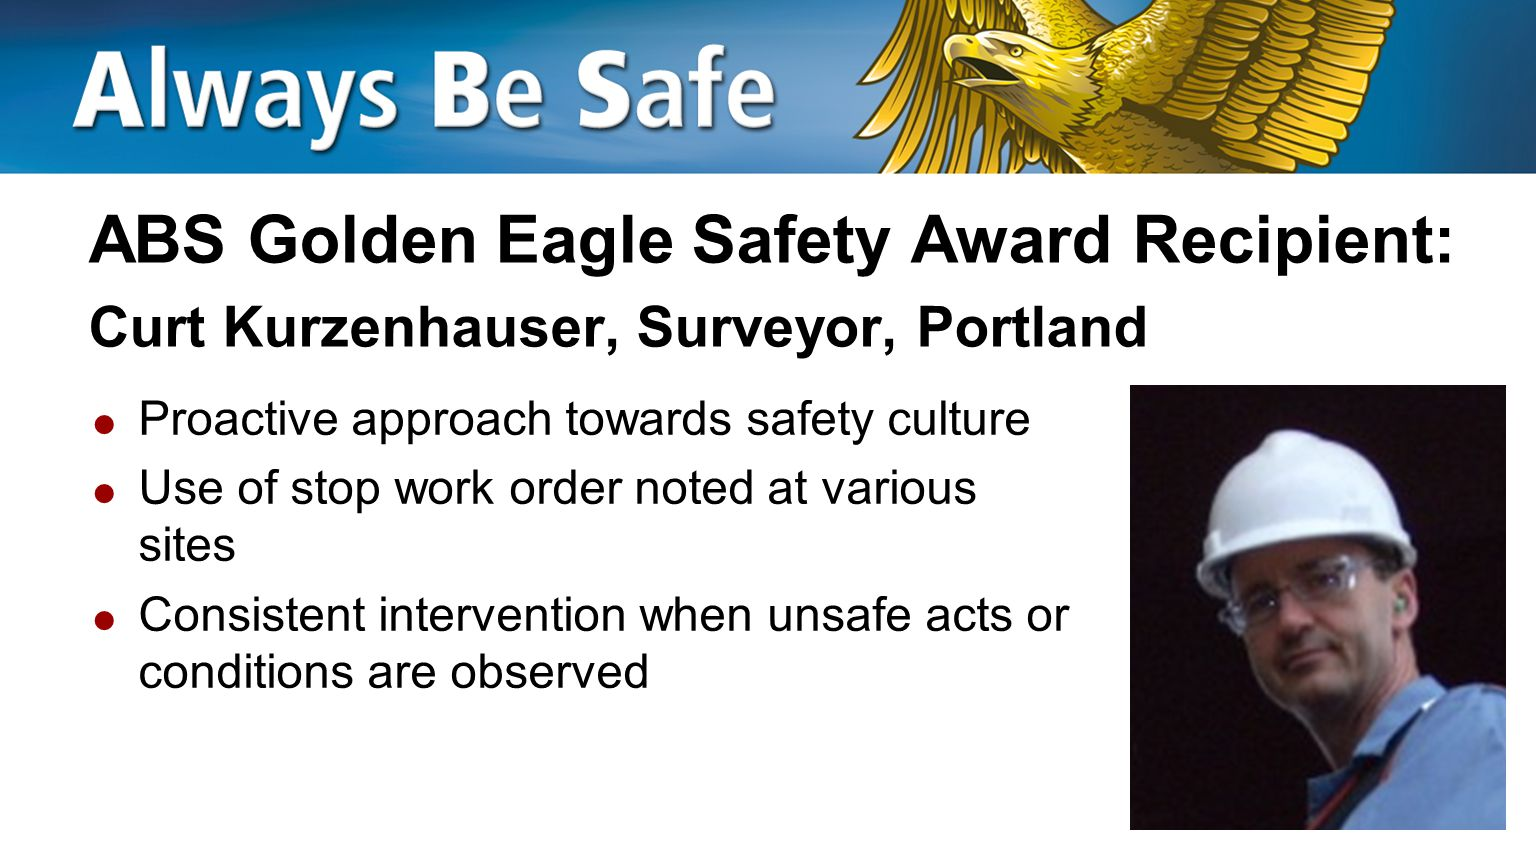 ABS Golden Eagle Safety Award Recipient: Paul Perret, ABS Group Process Safety Consultant  Consistent participation on safety teams and committees  Shares safety and health lessons experienced in the home and community  Works with HSE department to improve PPE